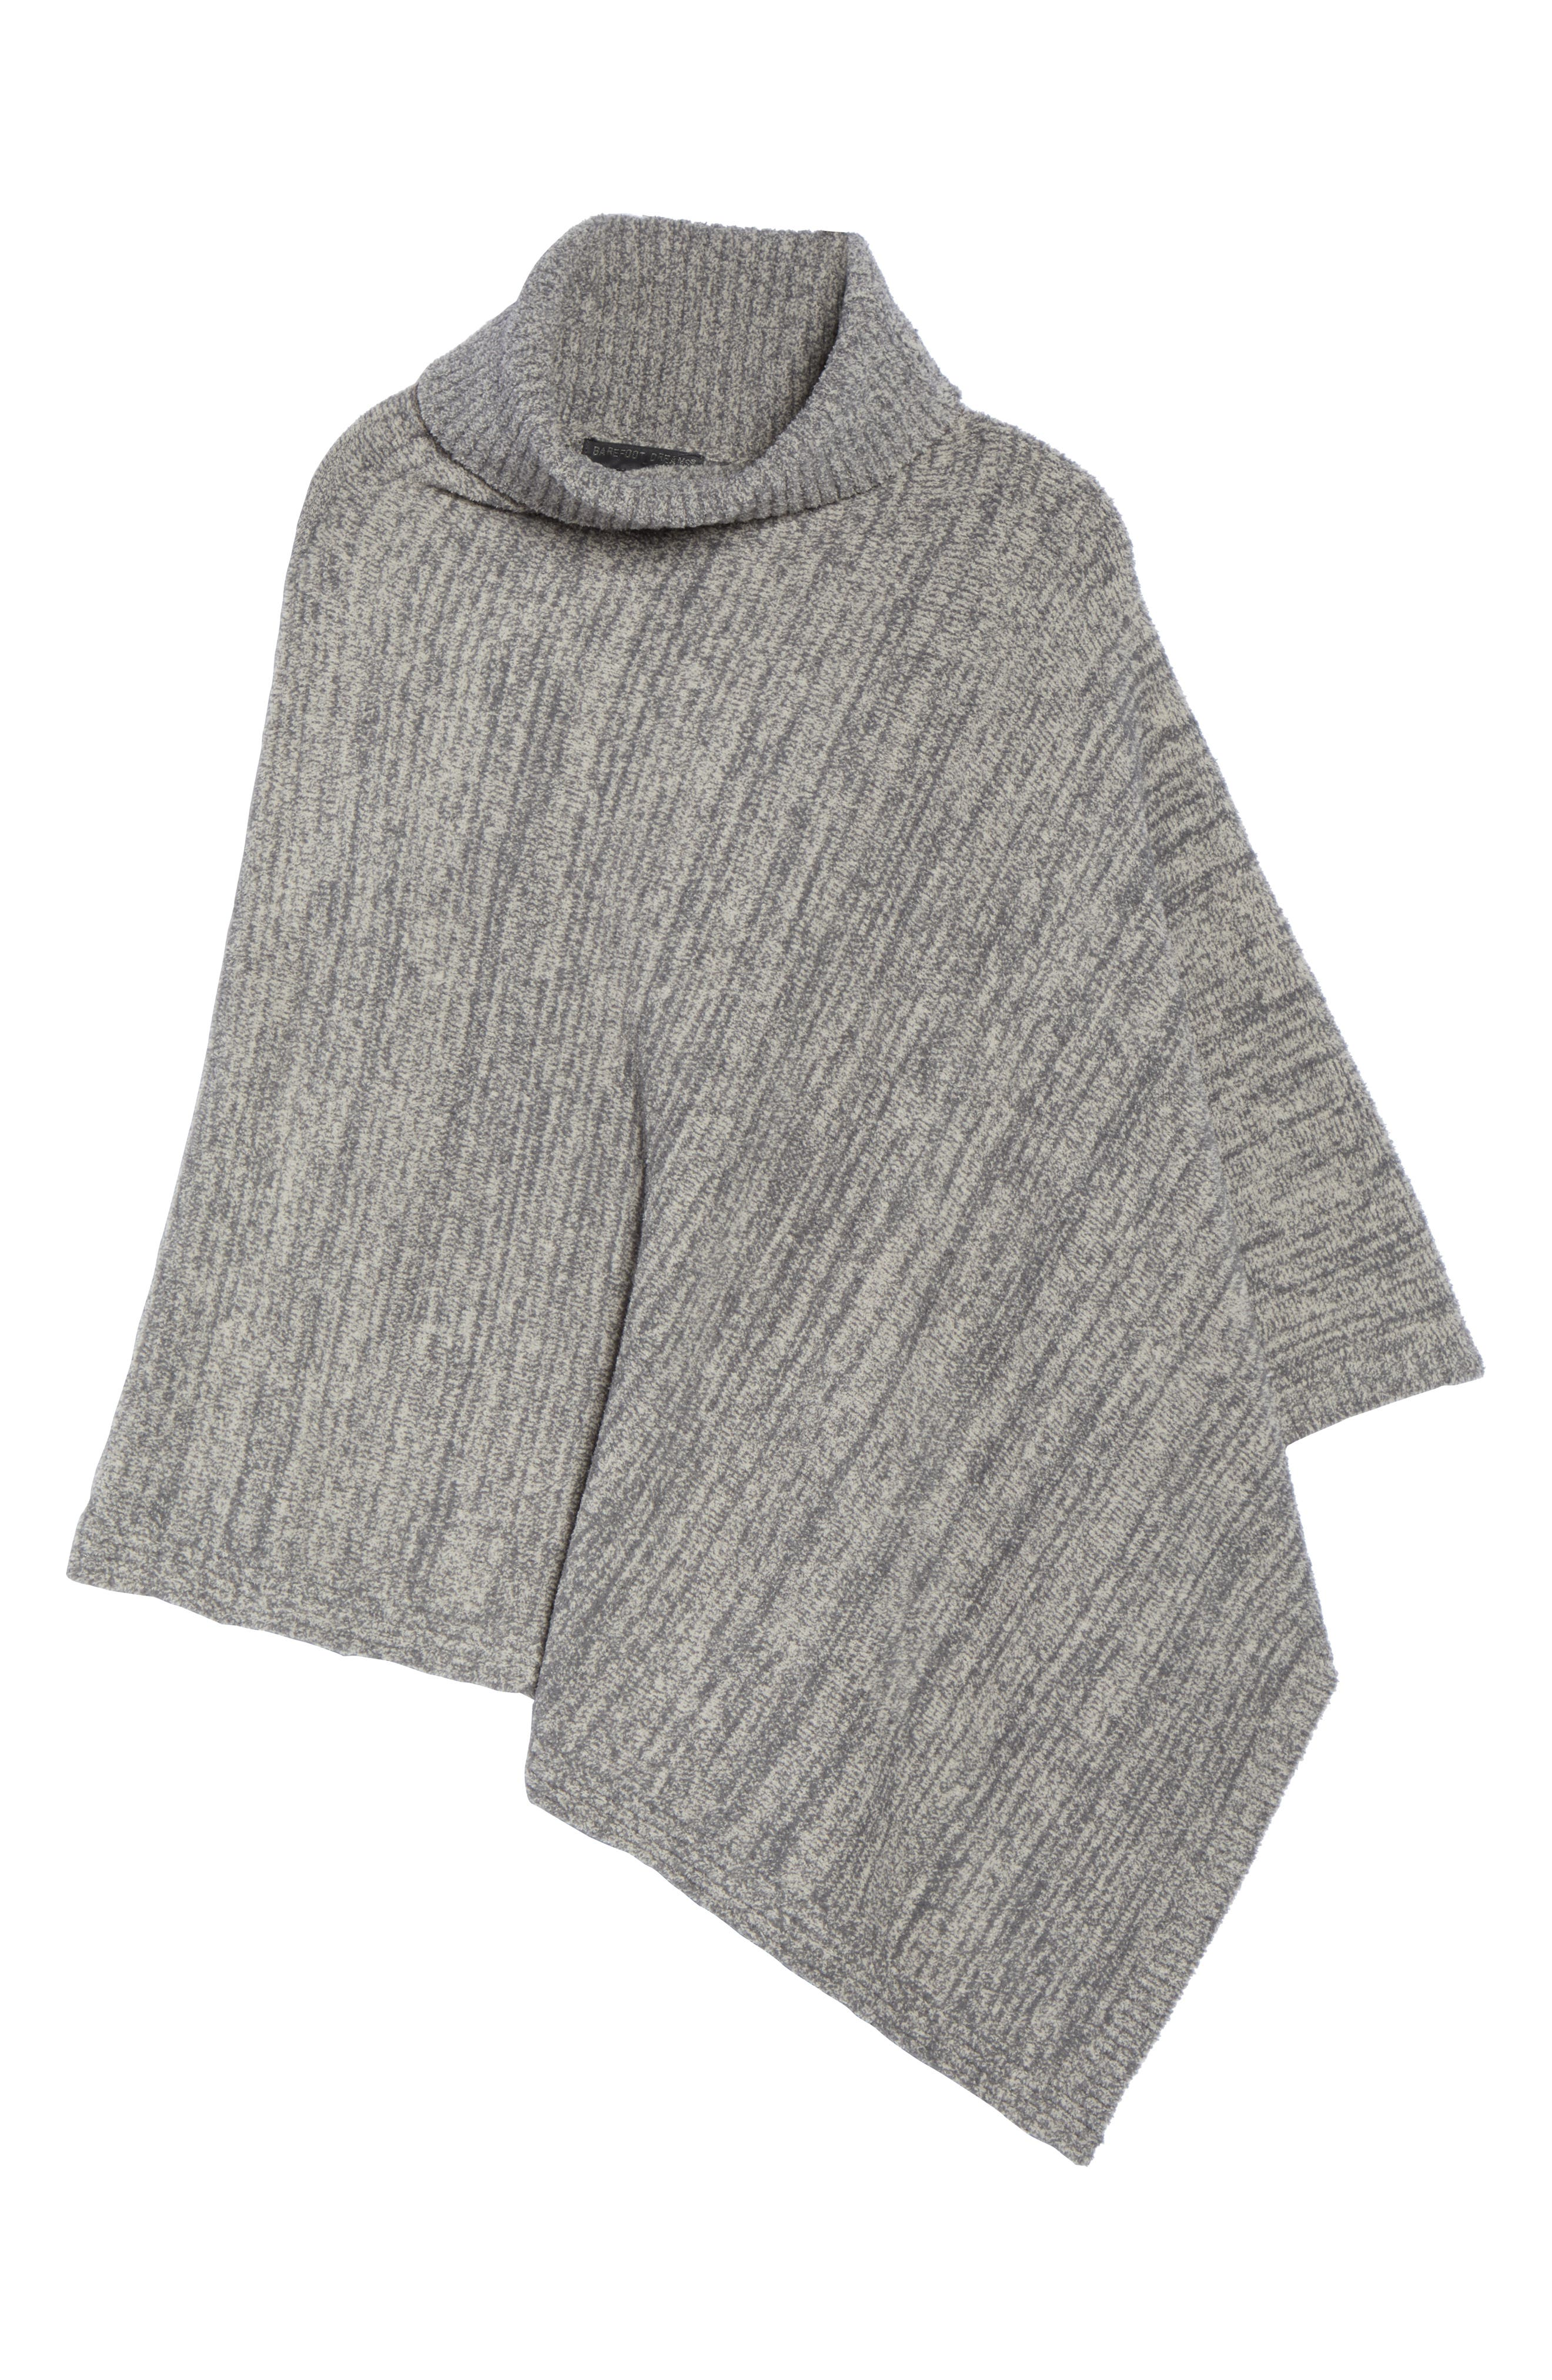 Cozychic<sup>®</sup> Point Dume Poncho,                             Alternate thumbnail 6, color,                             GRAPHITE/ STONE HEATHERED